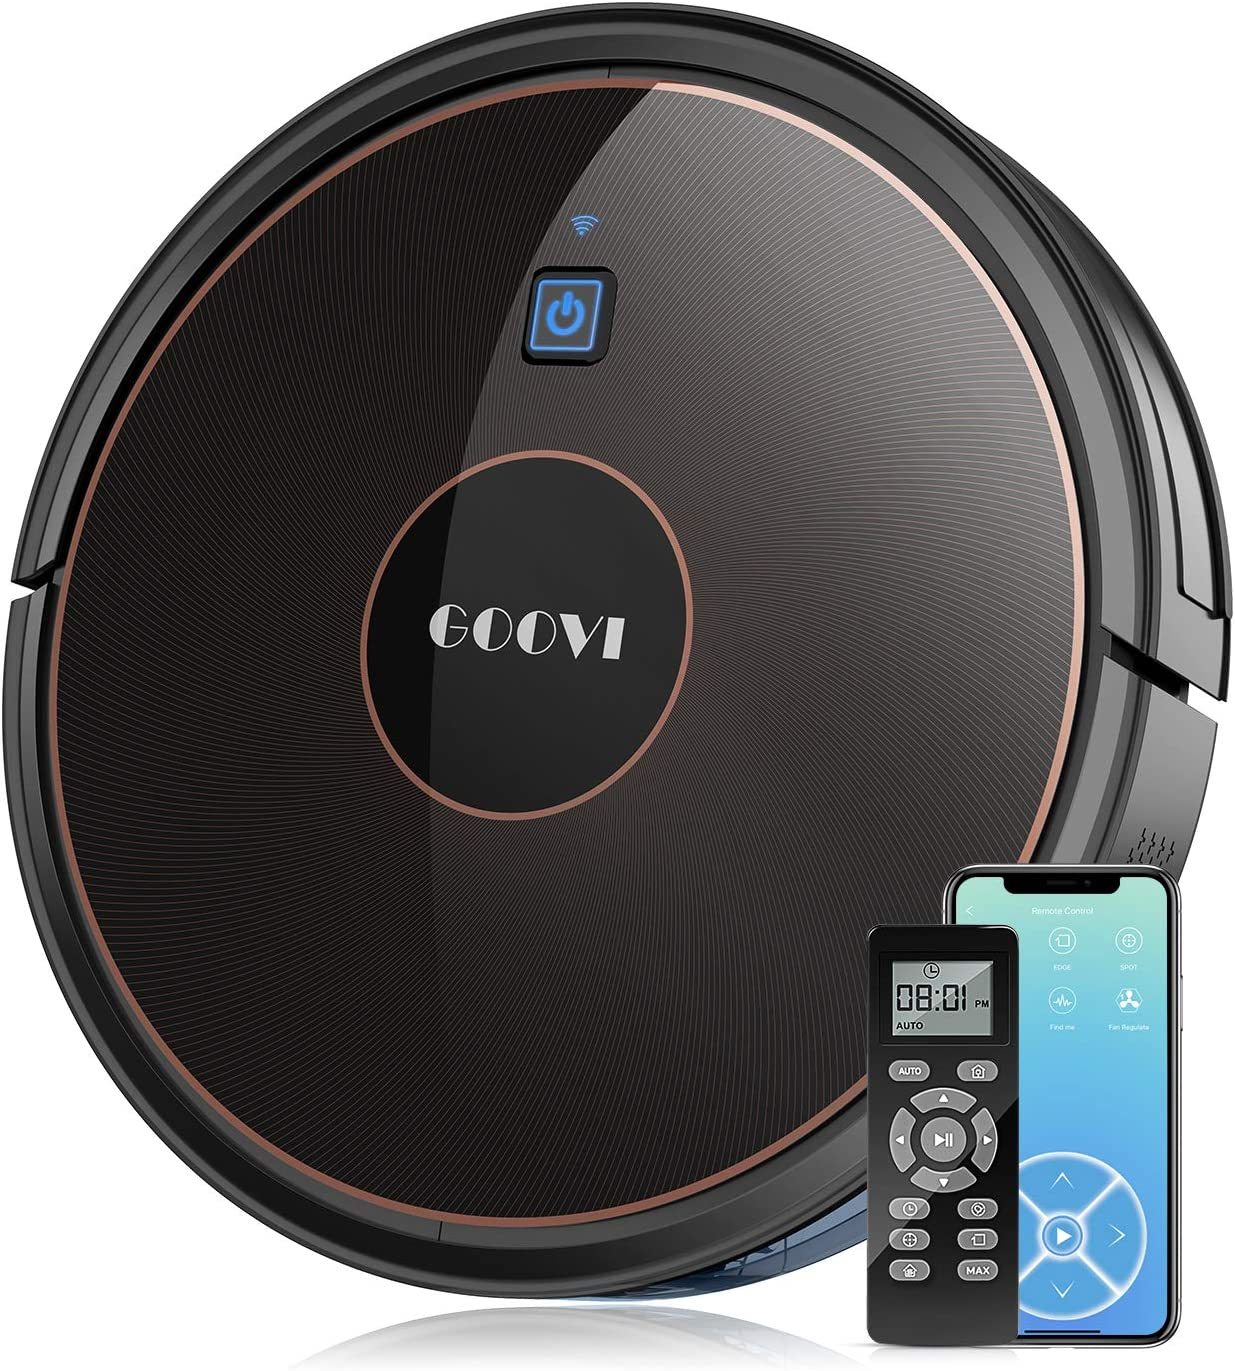 GOOVI Robot Vacuum, 1600Pa Wi-Fi Robotic Vacuum Cleaner (Slim) with Alexa, Quiet, Self-Charging Vacuum, for Pet Hair, Hard Floor, Medium-Pile Carpets